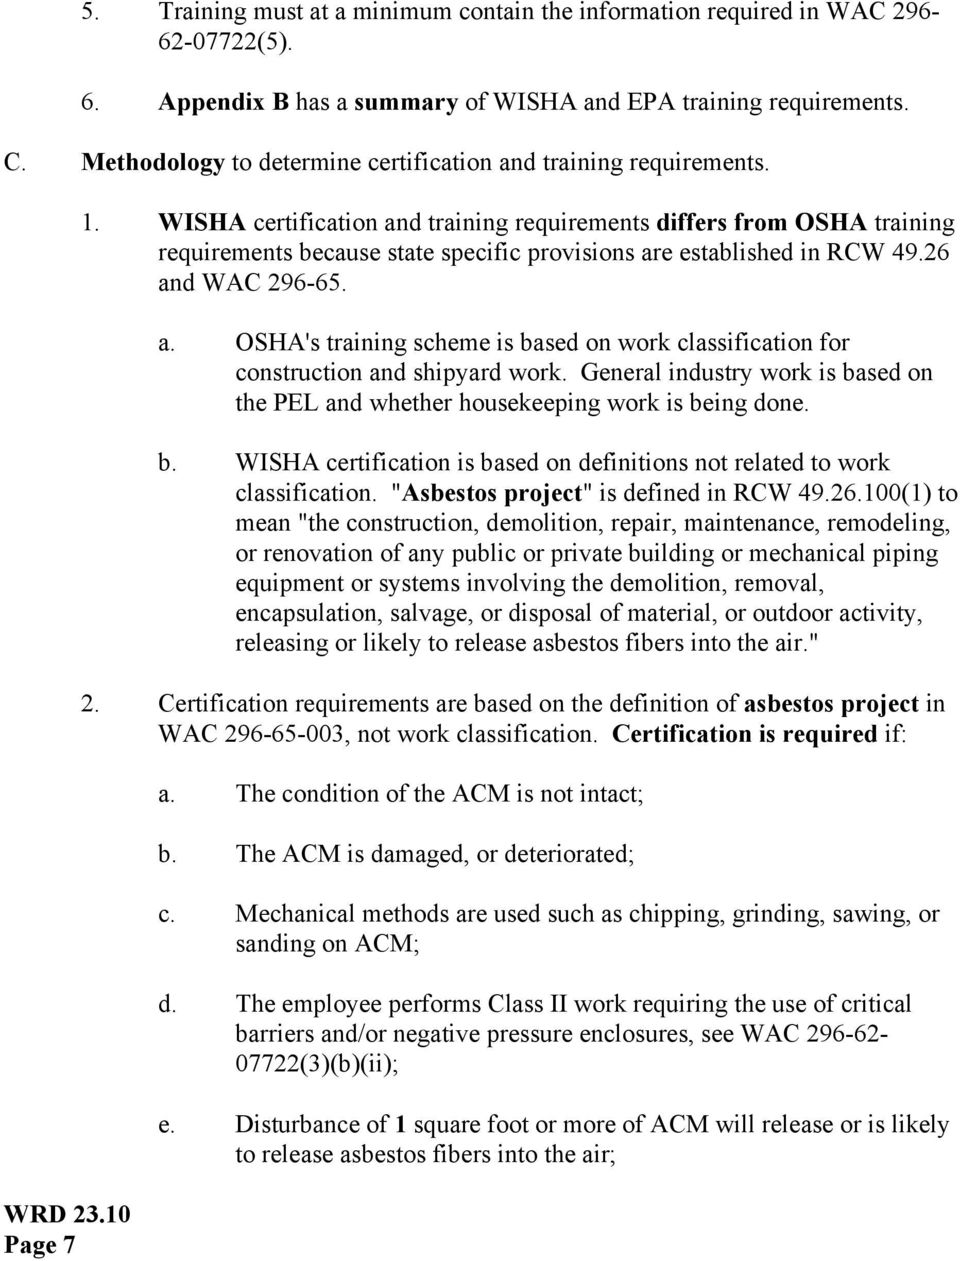 WISHA certification and training requirements differs from OSHA training requirements because state specific provisions are established in RCW 49.26 and WAC 296-65. a. OSHA's training scheme is based on work classification for construction and shipyard work.